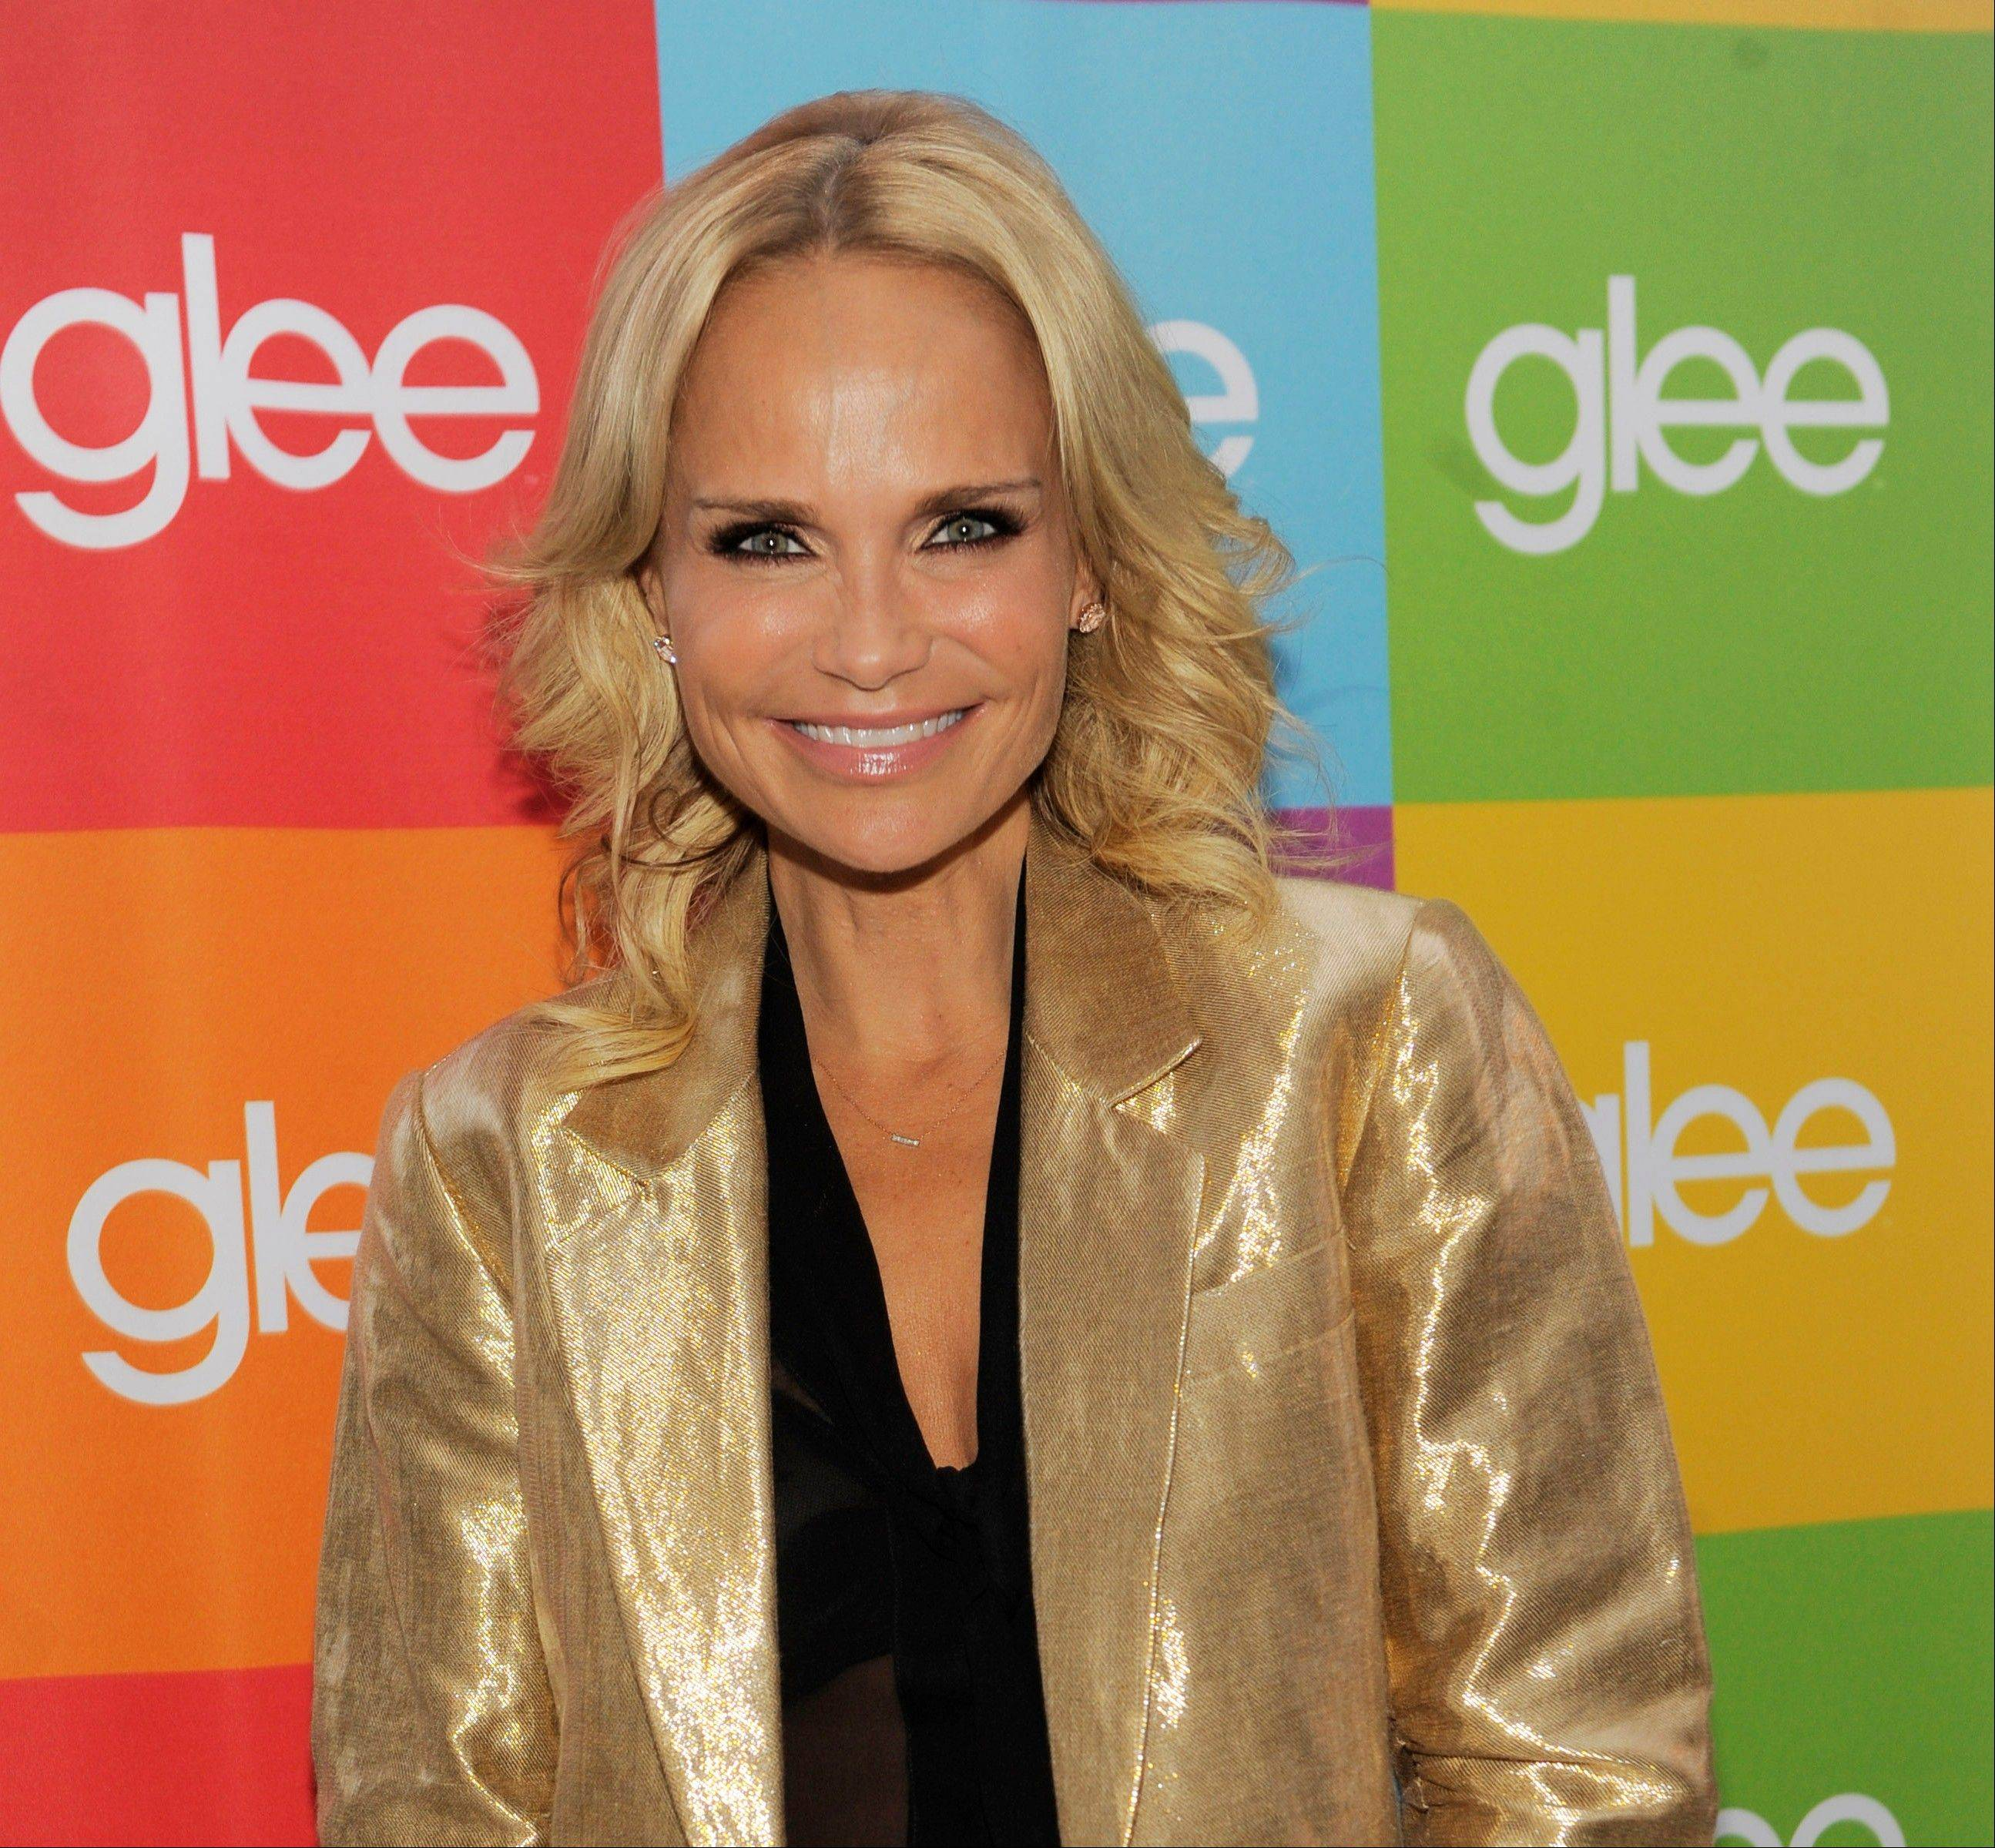 Kristin Chenoweth issued a statement Monday expressing �deep regret� that she is unable to return to the CBS legal drama �The Good Wife,� after sustaining injuries on set during filming.